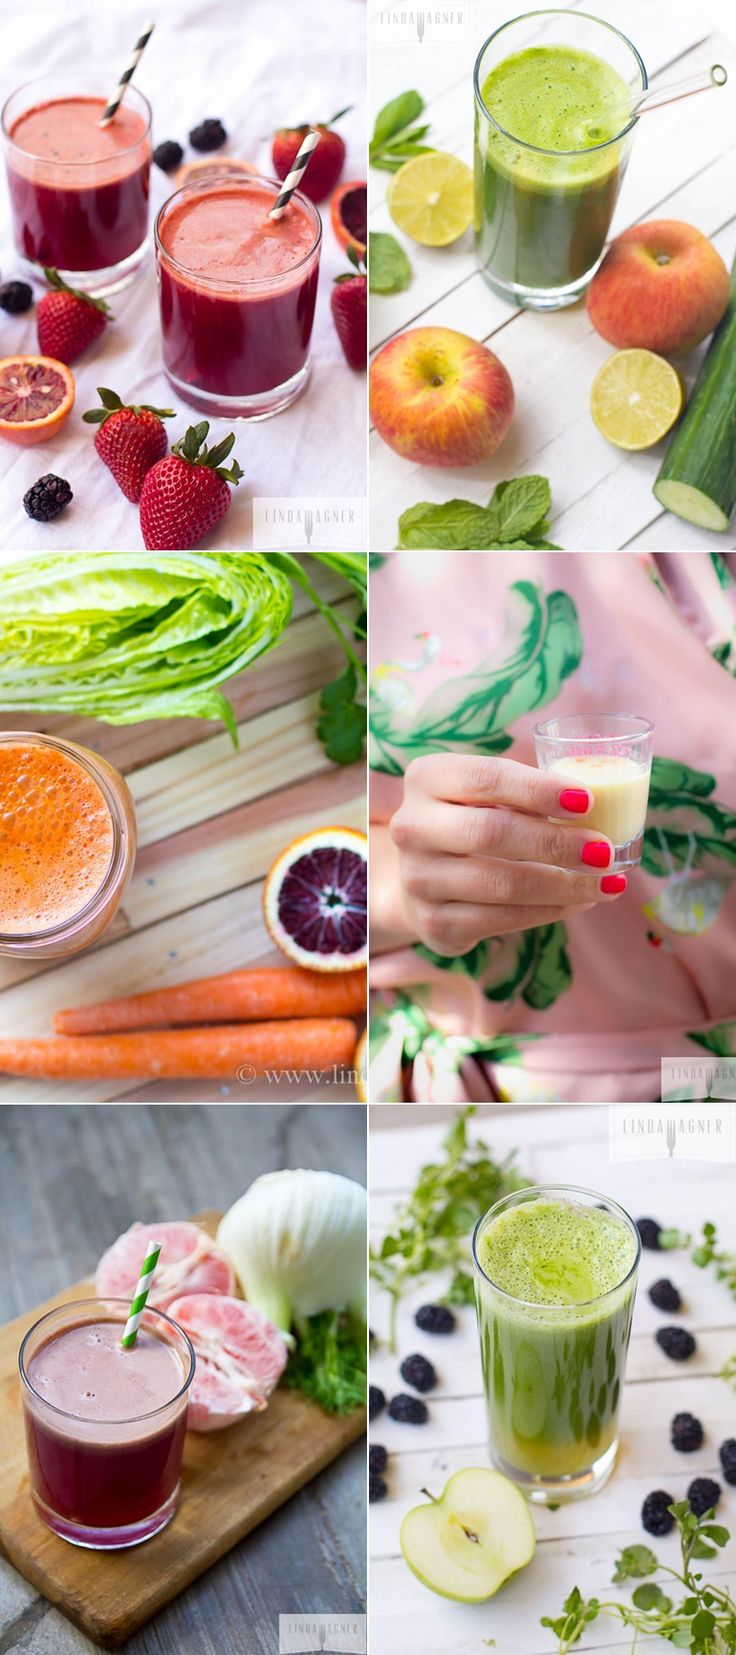 8 Juice Recipes For Every Ailment - great info here!